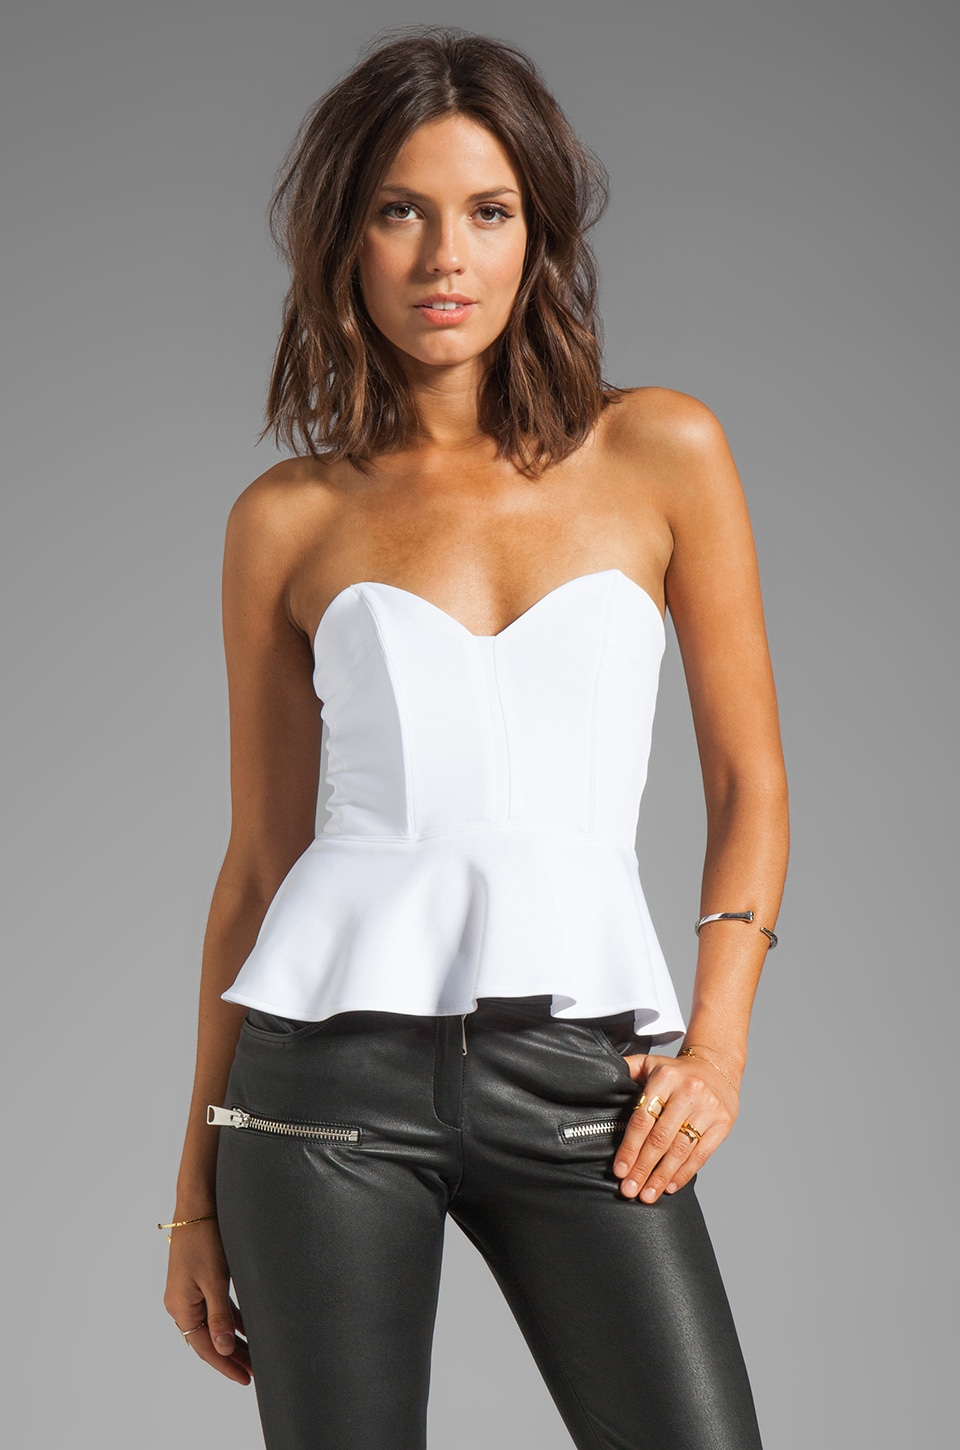 Boulee Gia Top in White